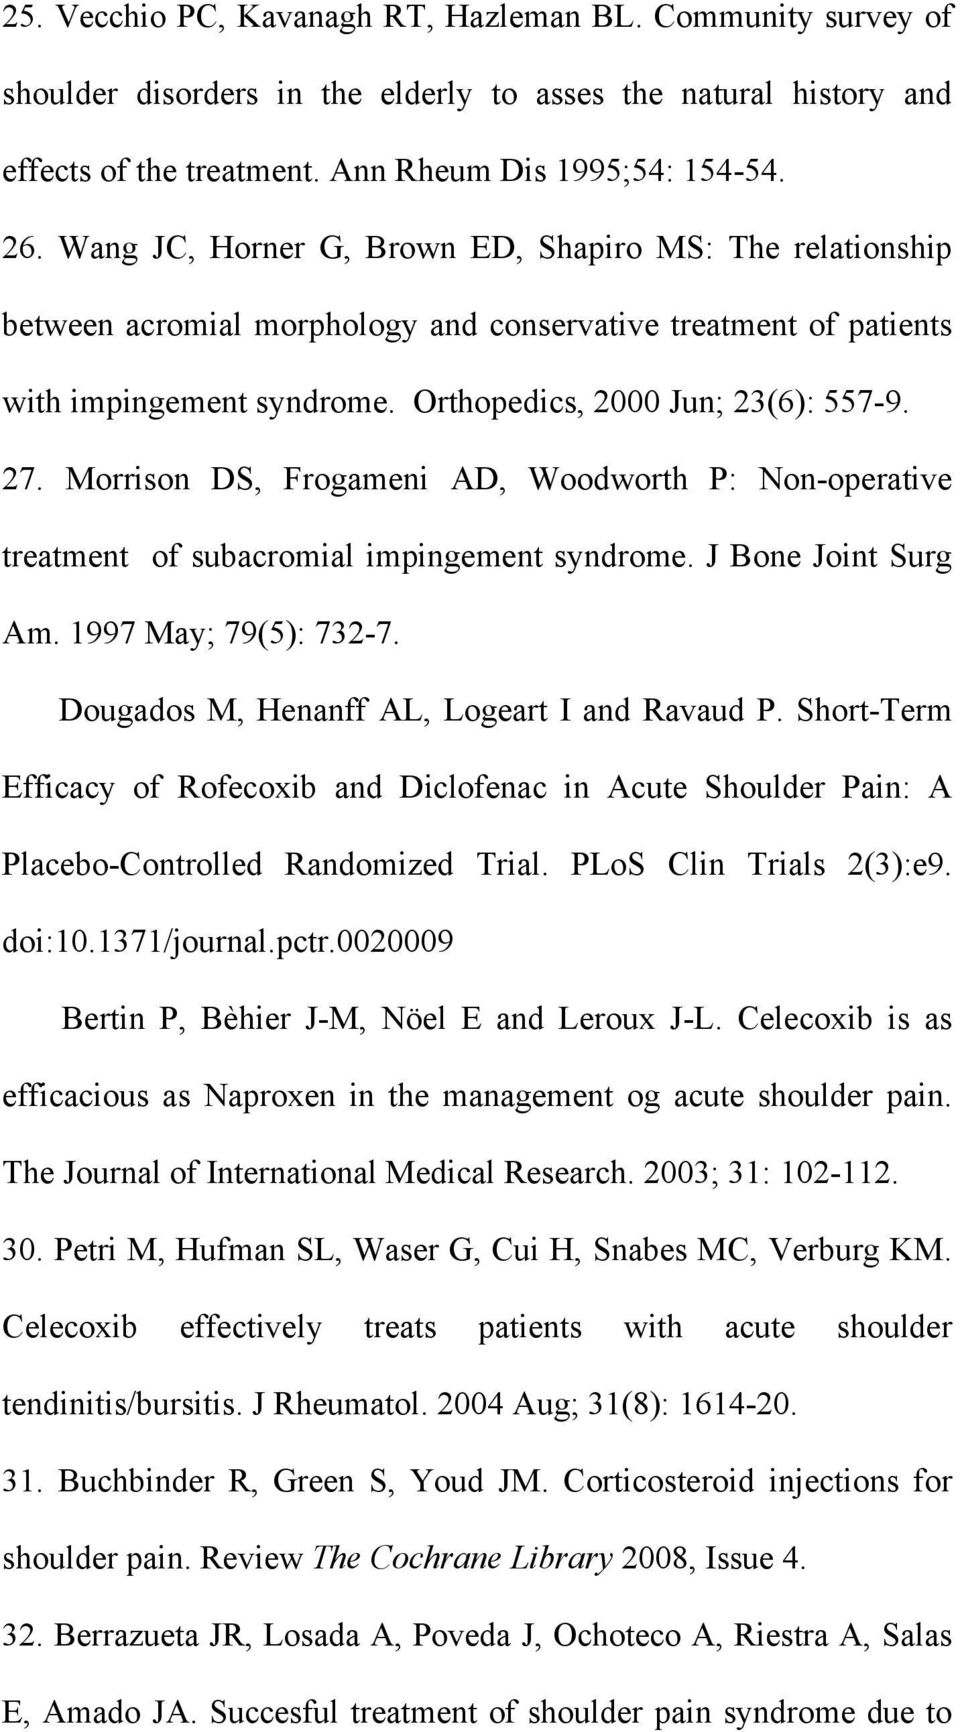 Morrison DS, Frogameni AD, Woodworth P: Non-operative treatment of subacromial impingement syndrome. J Bone Joint Surg Am. 1997 May; 79(5): 732-7. 28.. Dougados M, Henanff AL, Logeart I and Ravaud P.